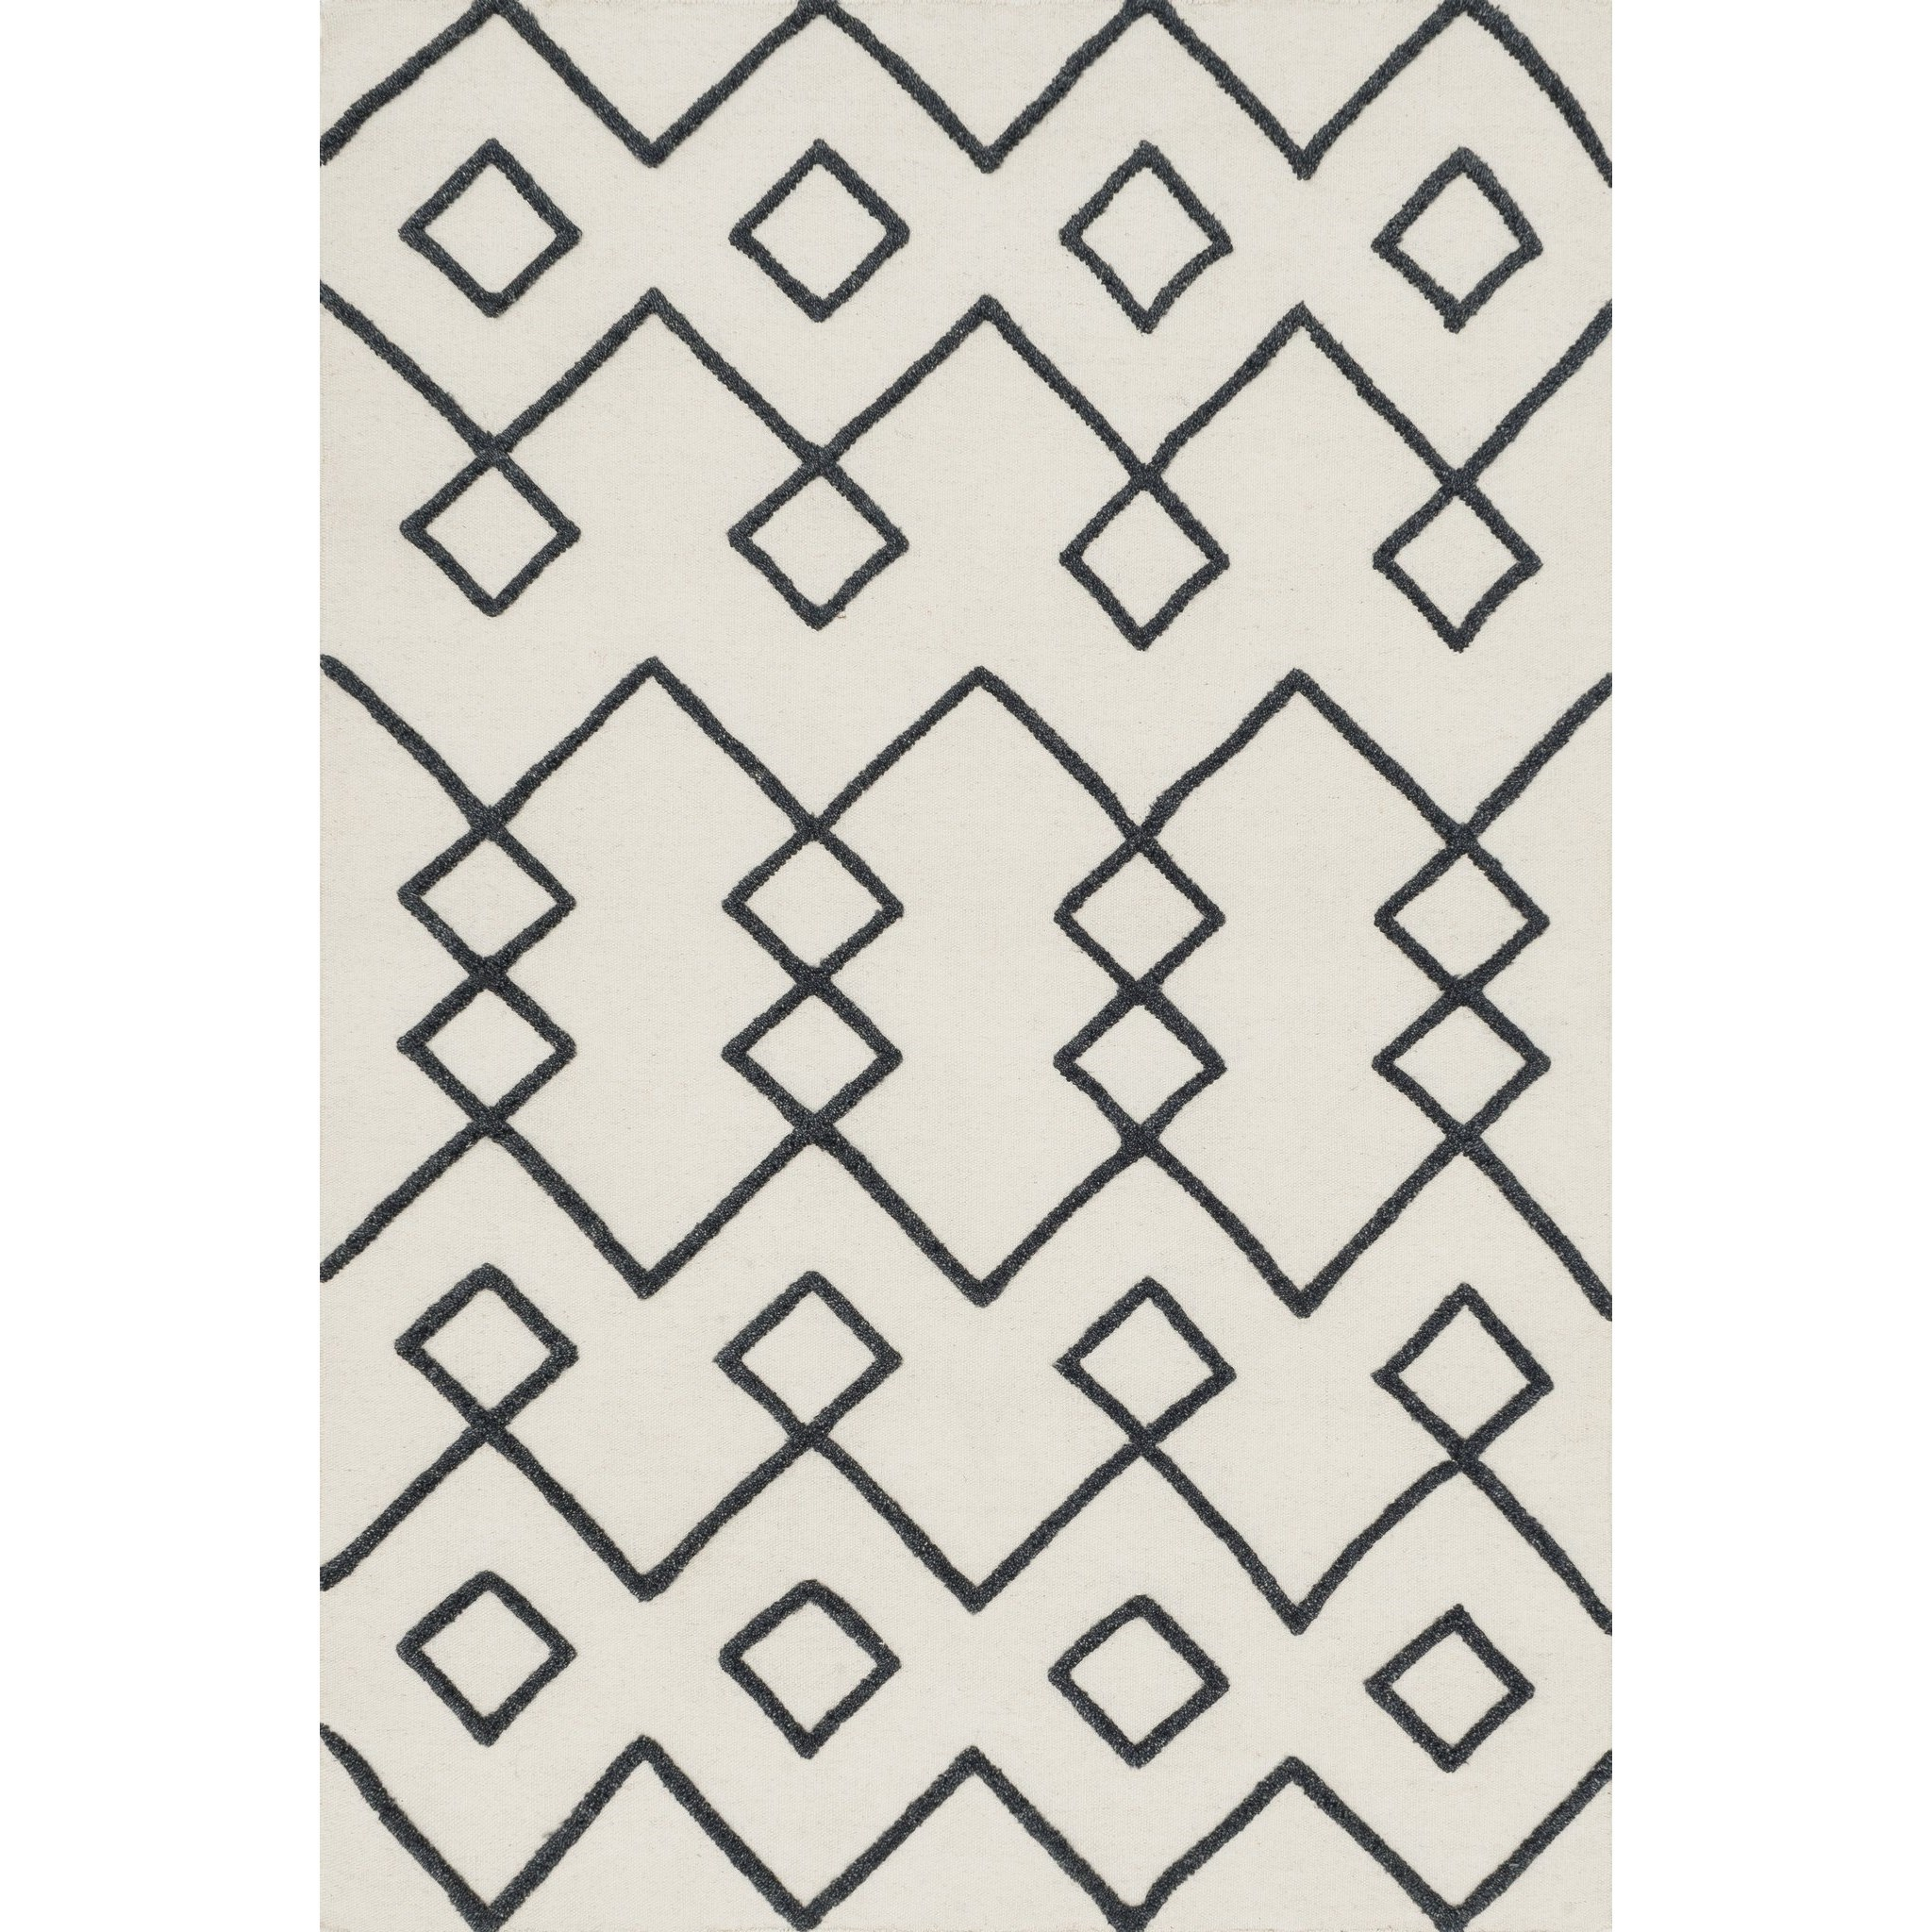 """Adler 7'-9"""" x 9'-9"""" Area Rug by Loloi Rugs at Virginia Furniture Market"""